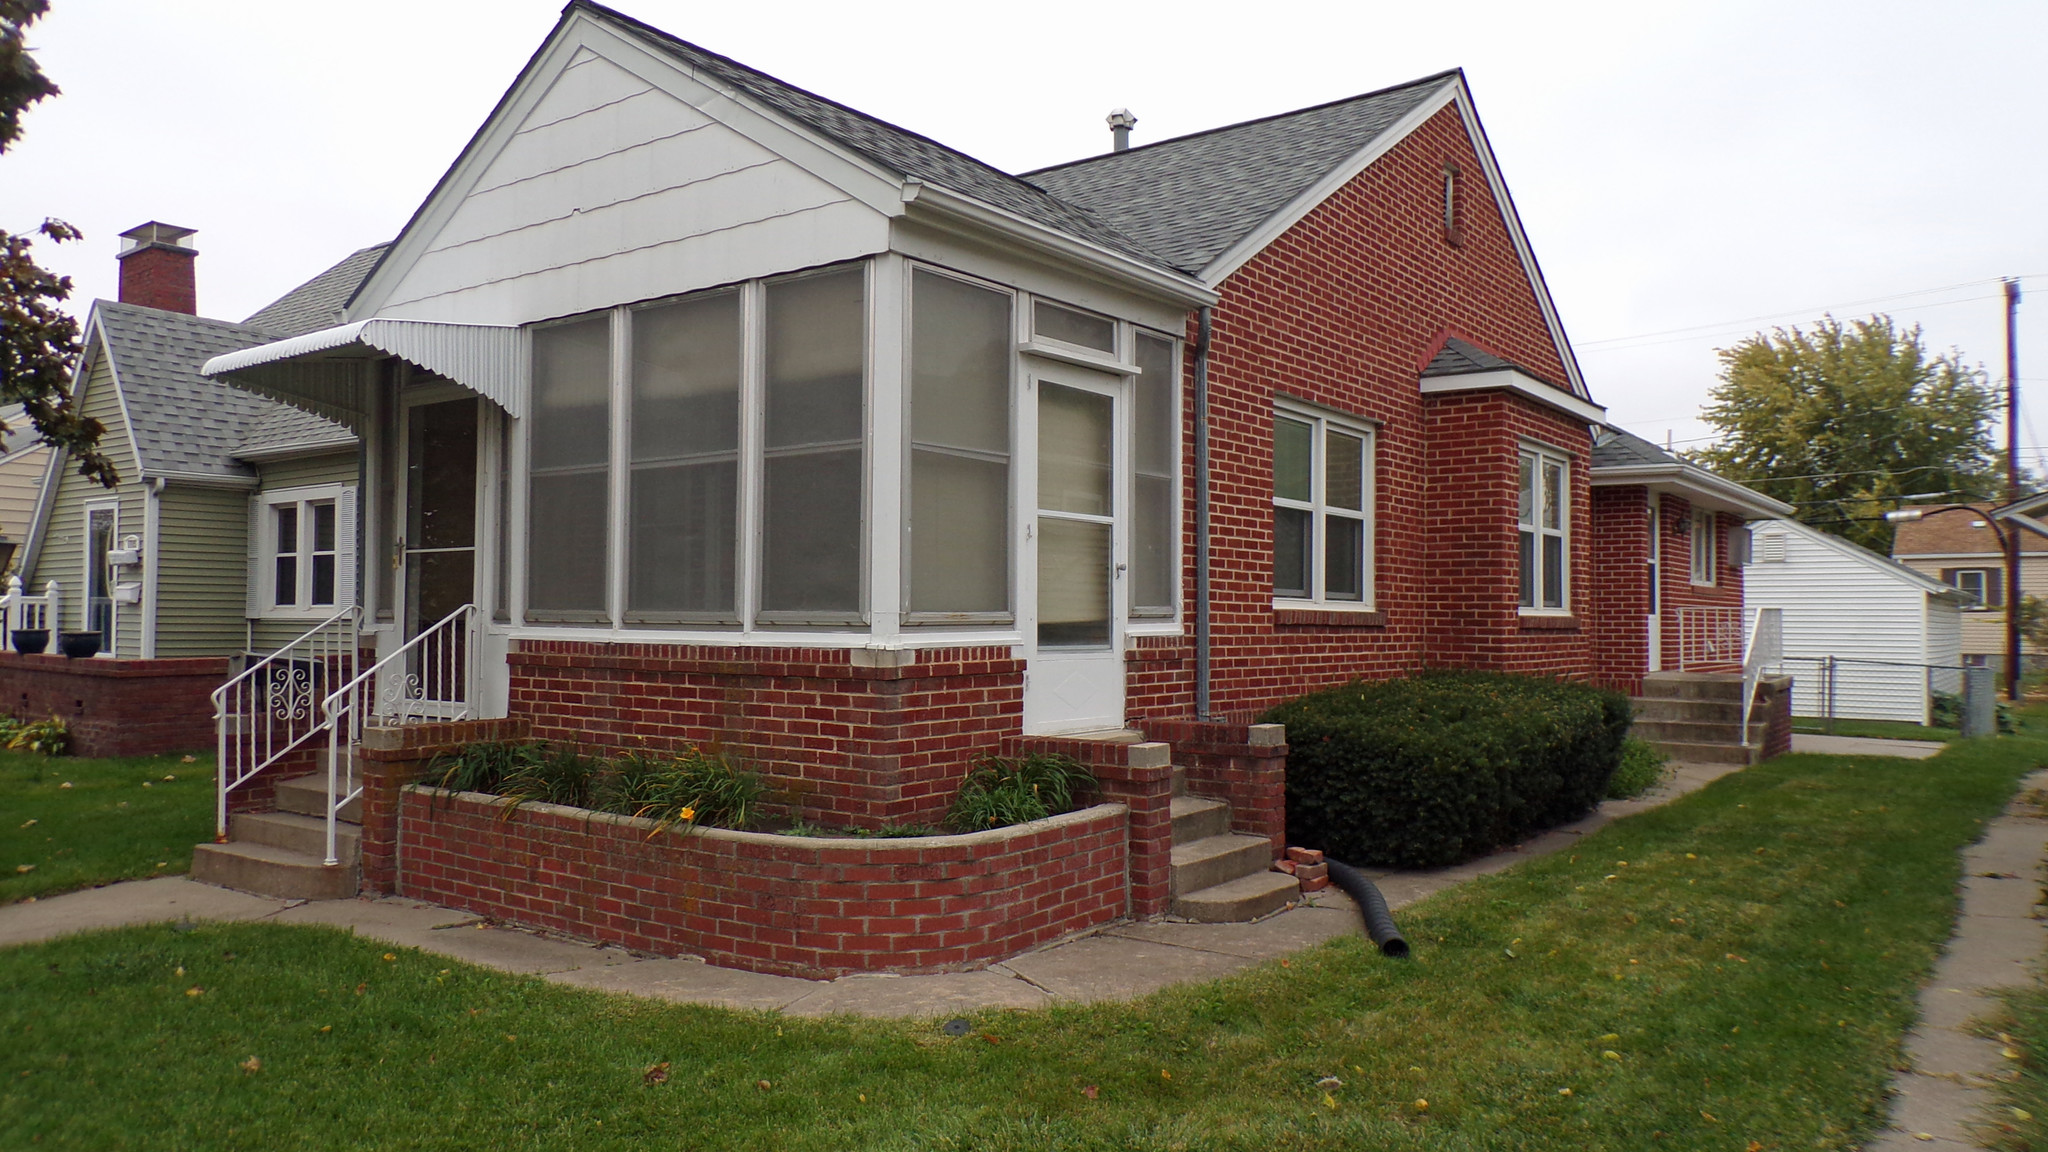 Refinished 2-Bedroom House In Columbus